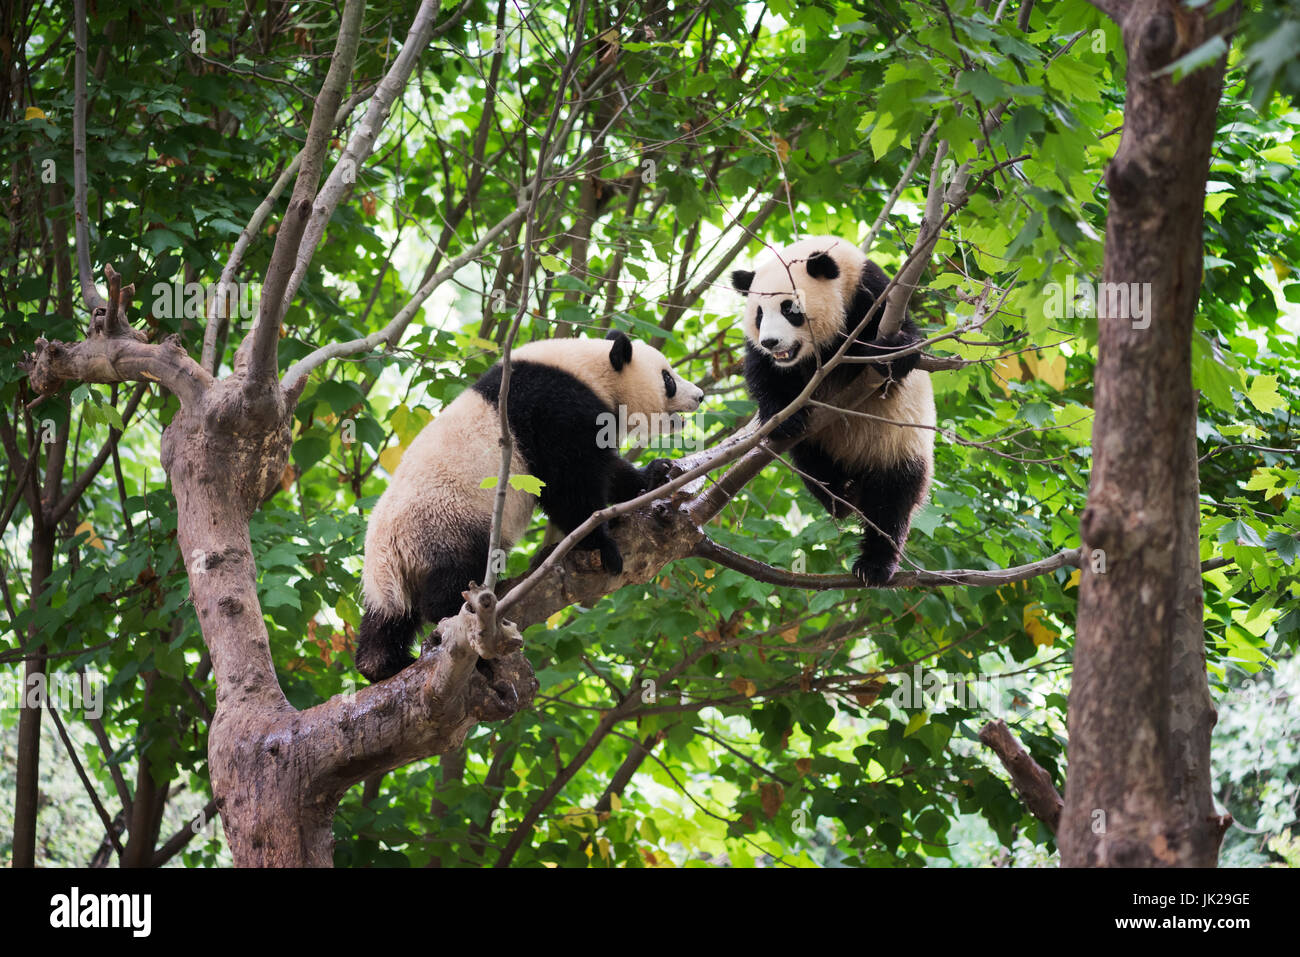 Two giant panda cubs playing in a tree - Stock Image